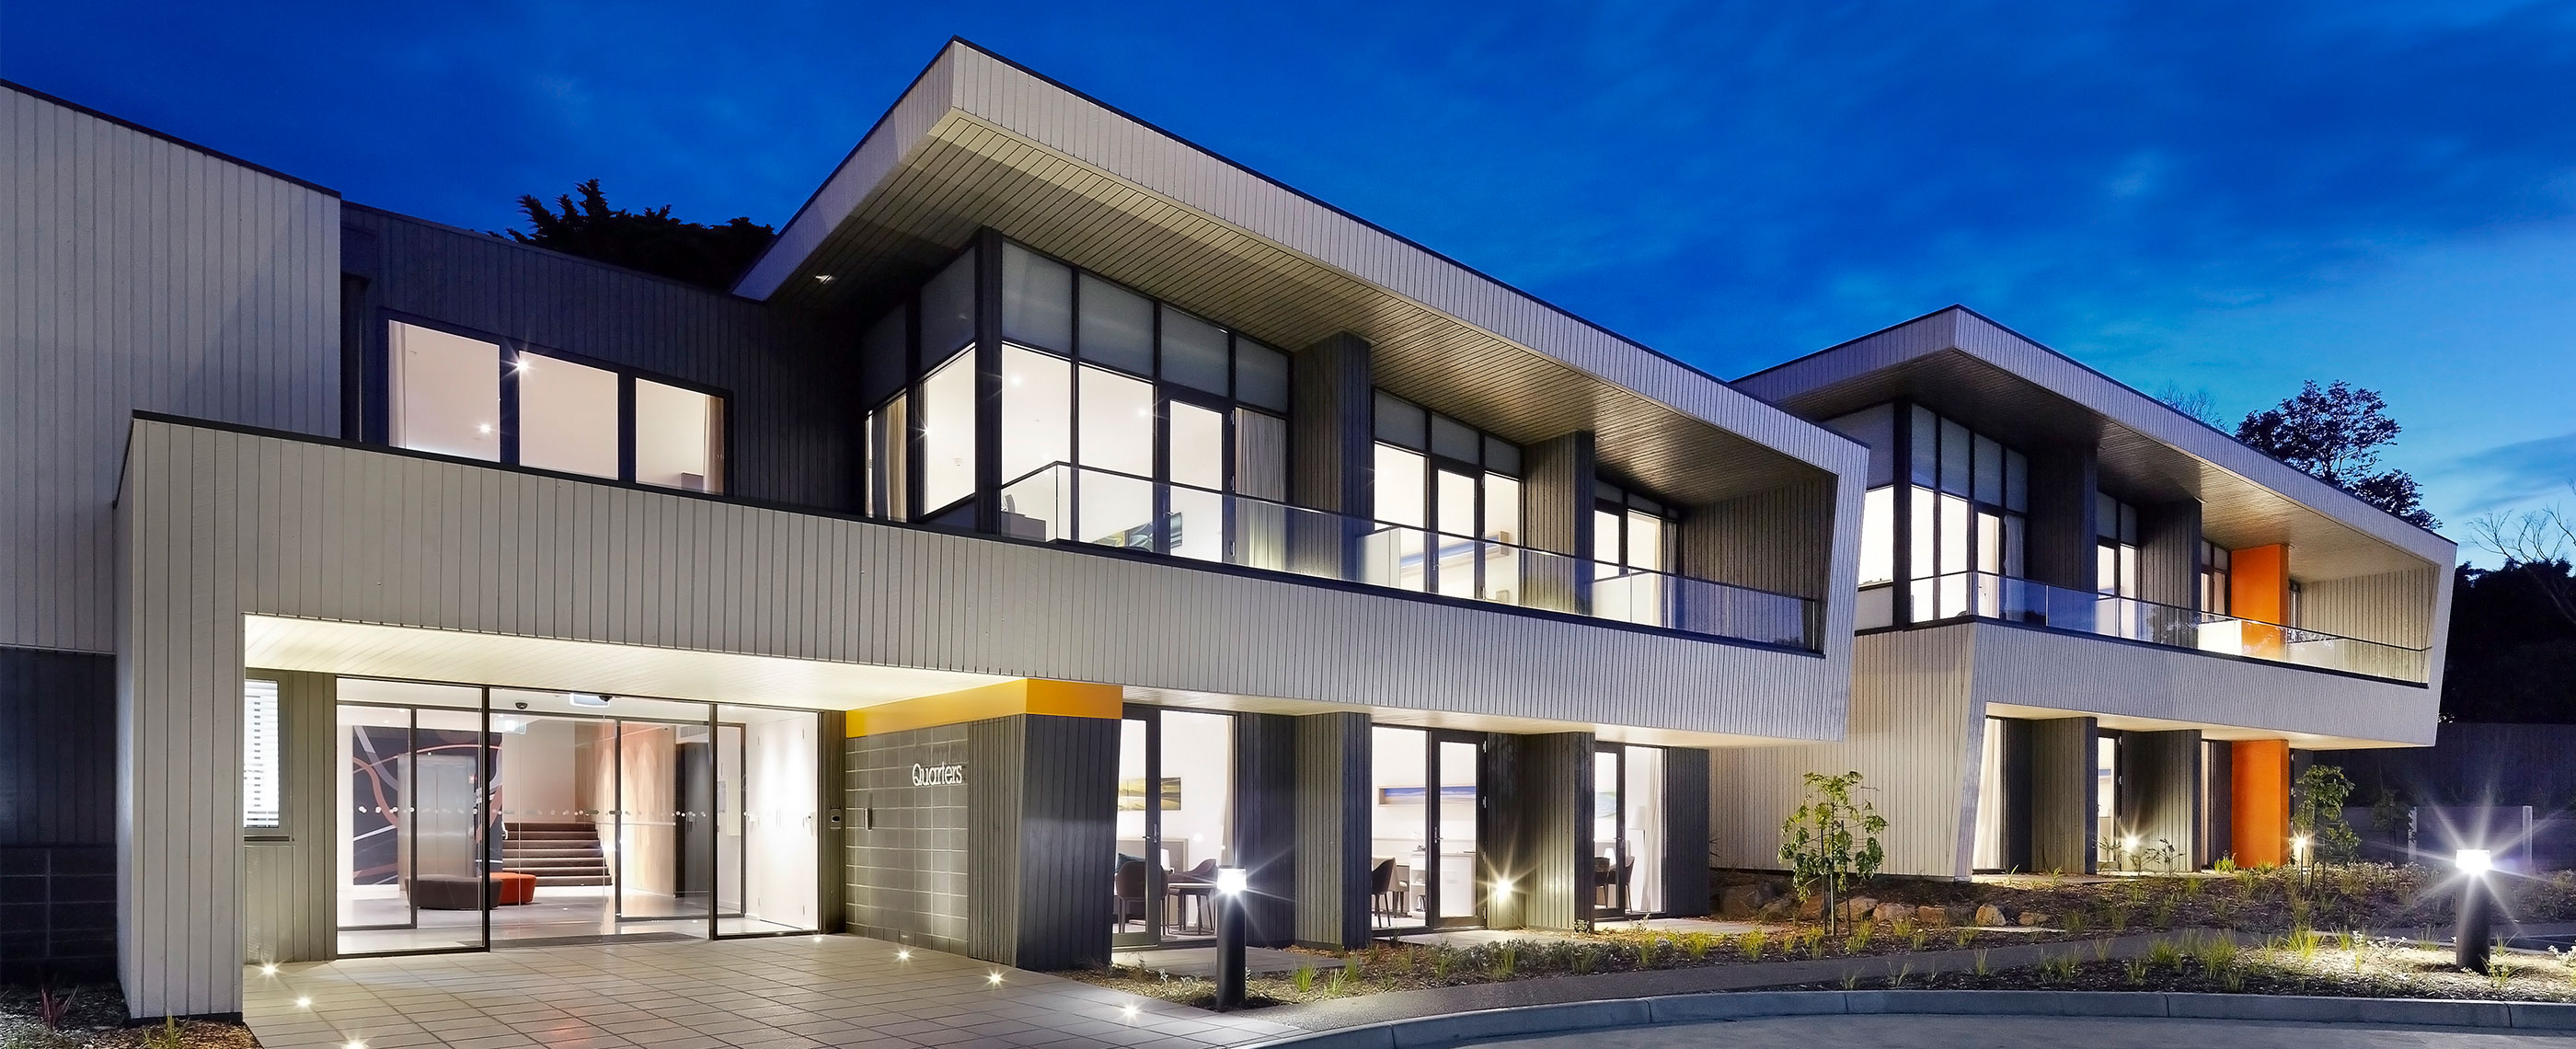 Flinders Hotel Rothelowman Architecture project